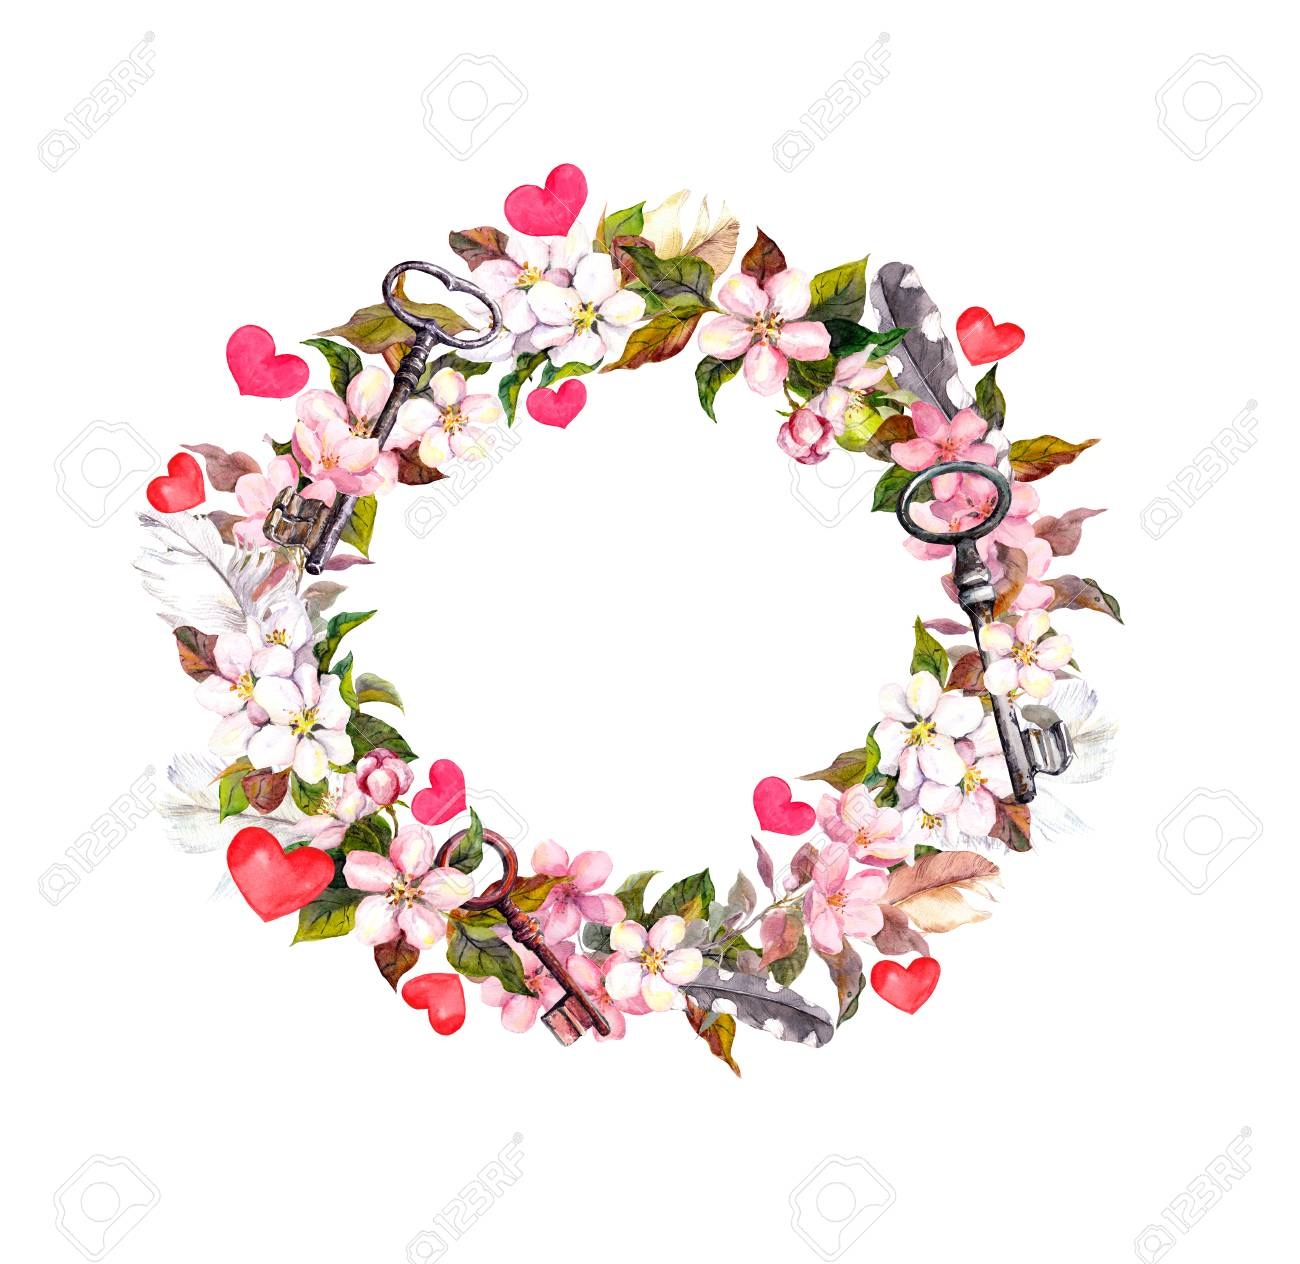 Floral Wreath Frame Pink Flowers Boho Feathers Hearts And